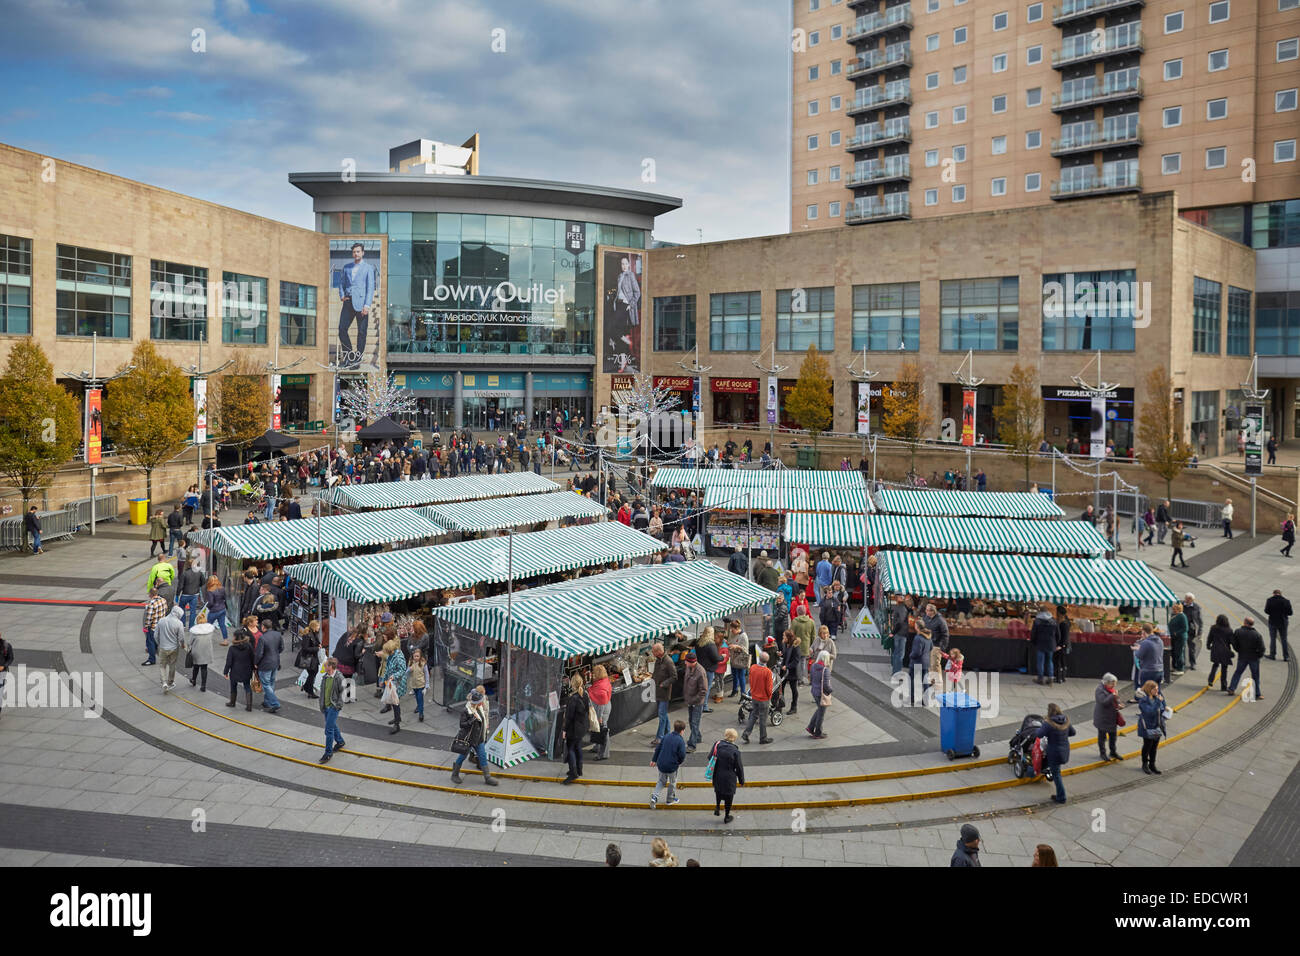 Salford Quays Lowry Outlet Mall  with a market outside - Stock Image